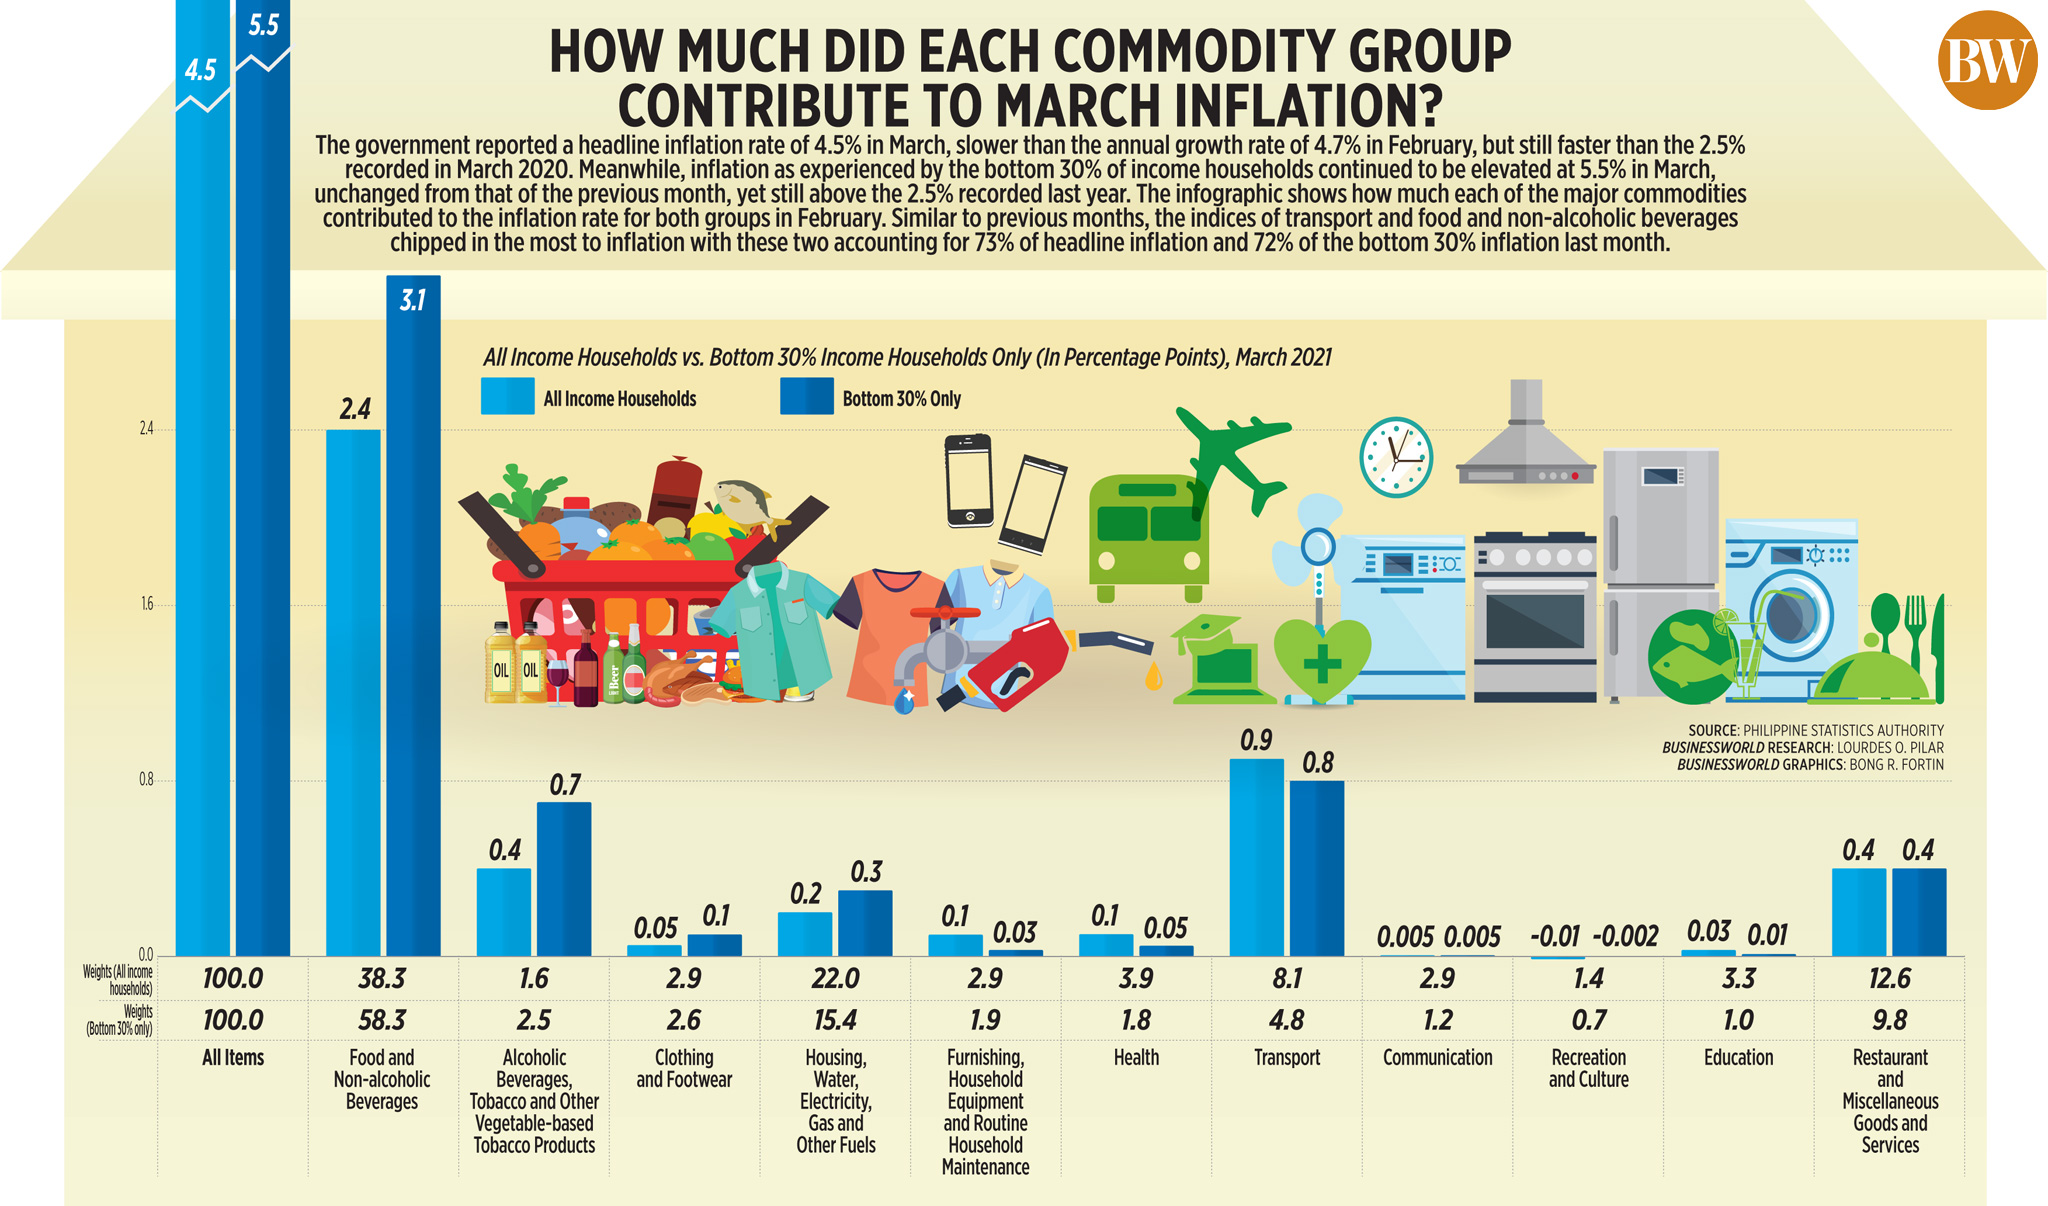 How much did each commodity group contribute to March inflation?